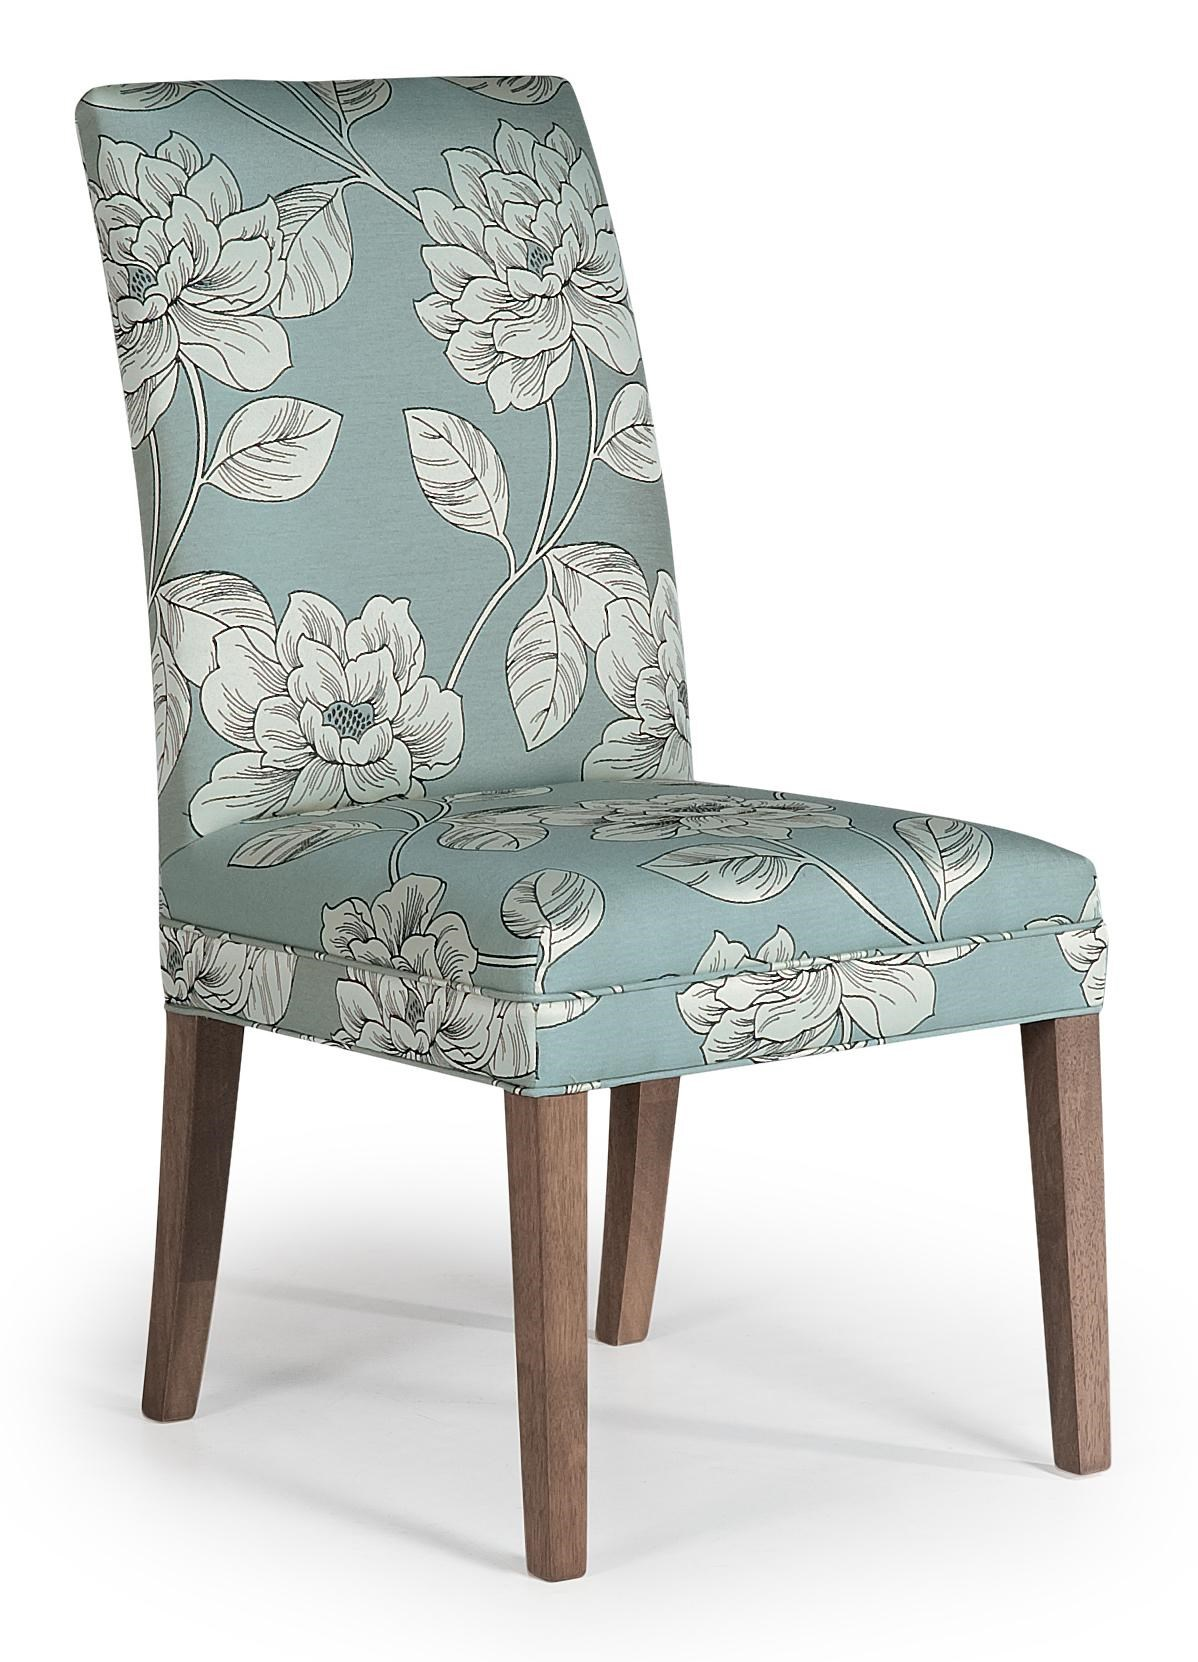 parsons chairs wooden skull chair studio 47 dining odell side morris home by